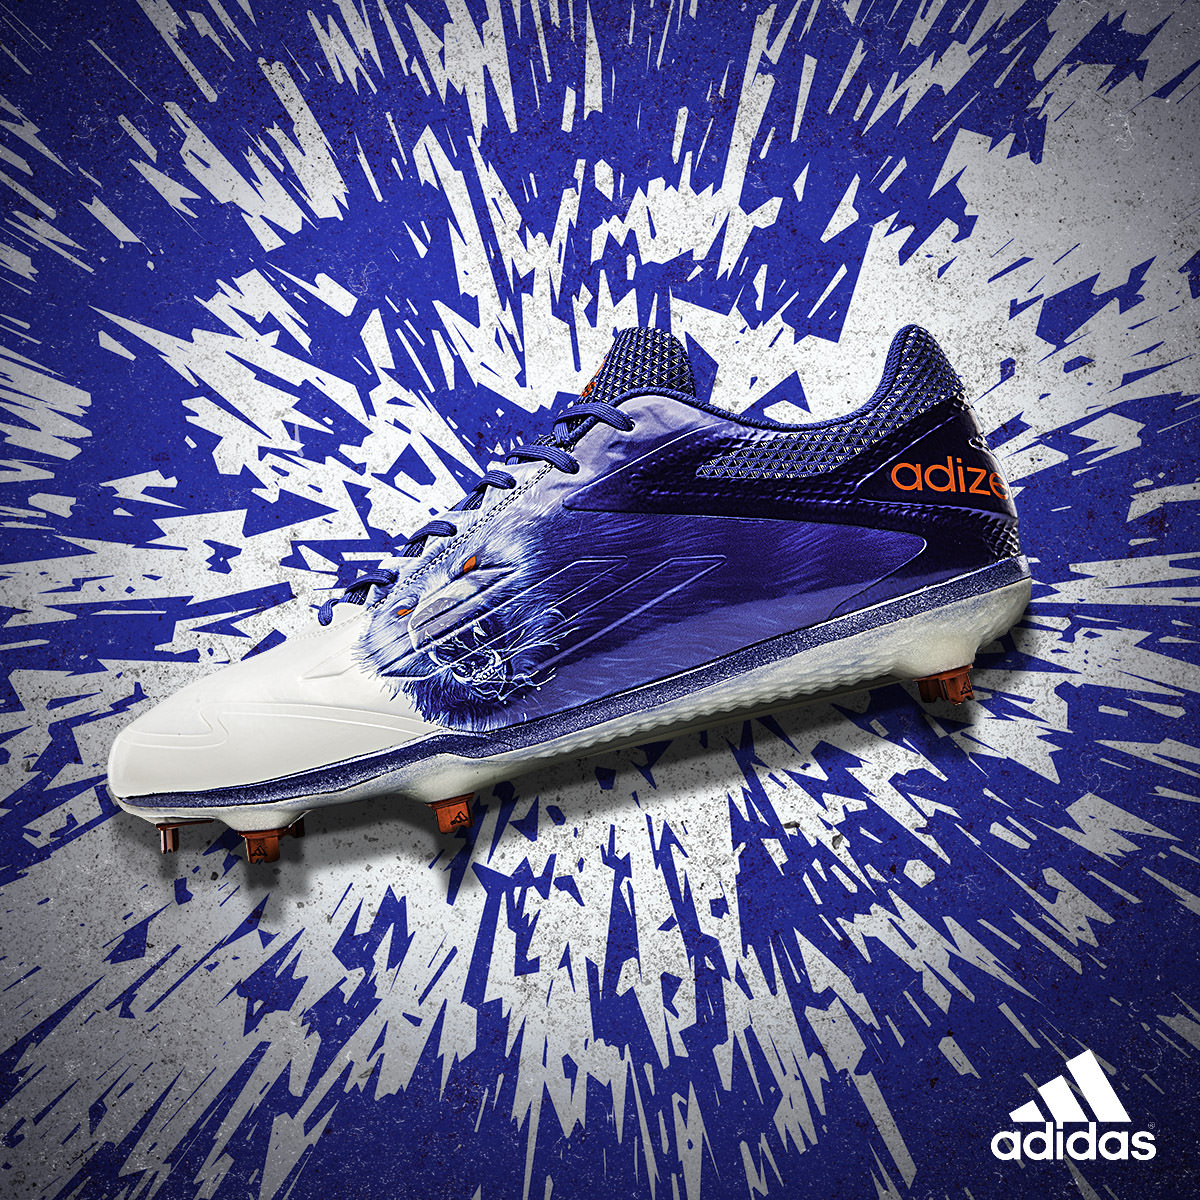 adidas_Baseball_Kris_Bryant_Uncaged_Bear_Side